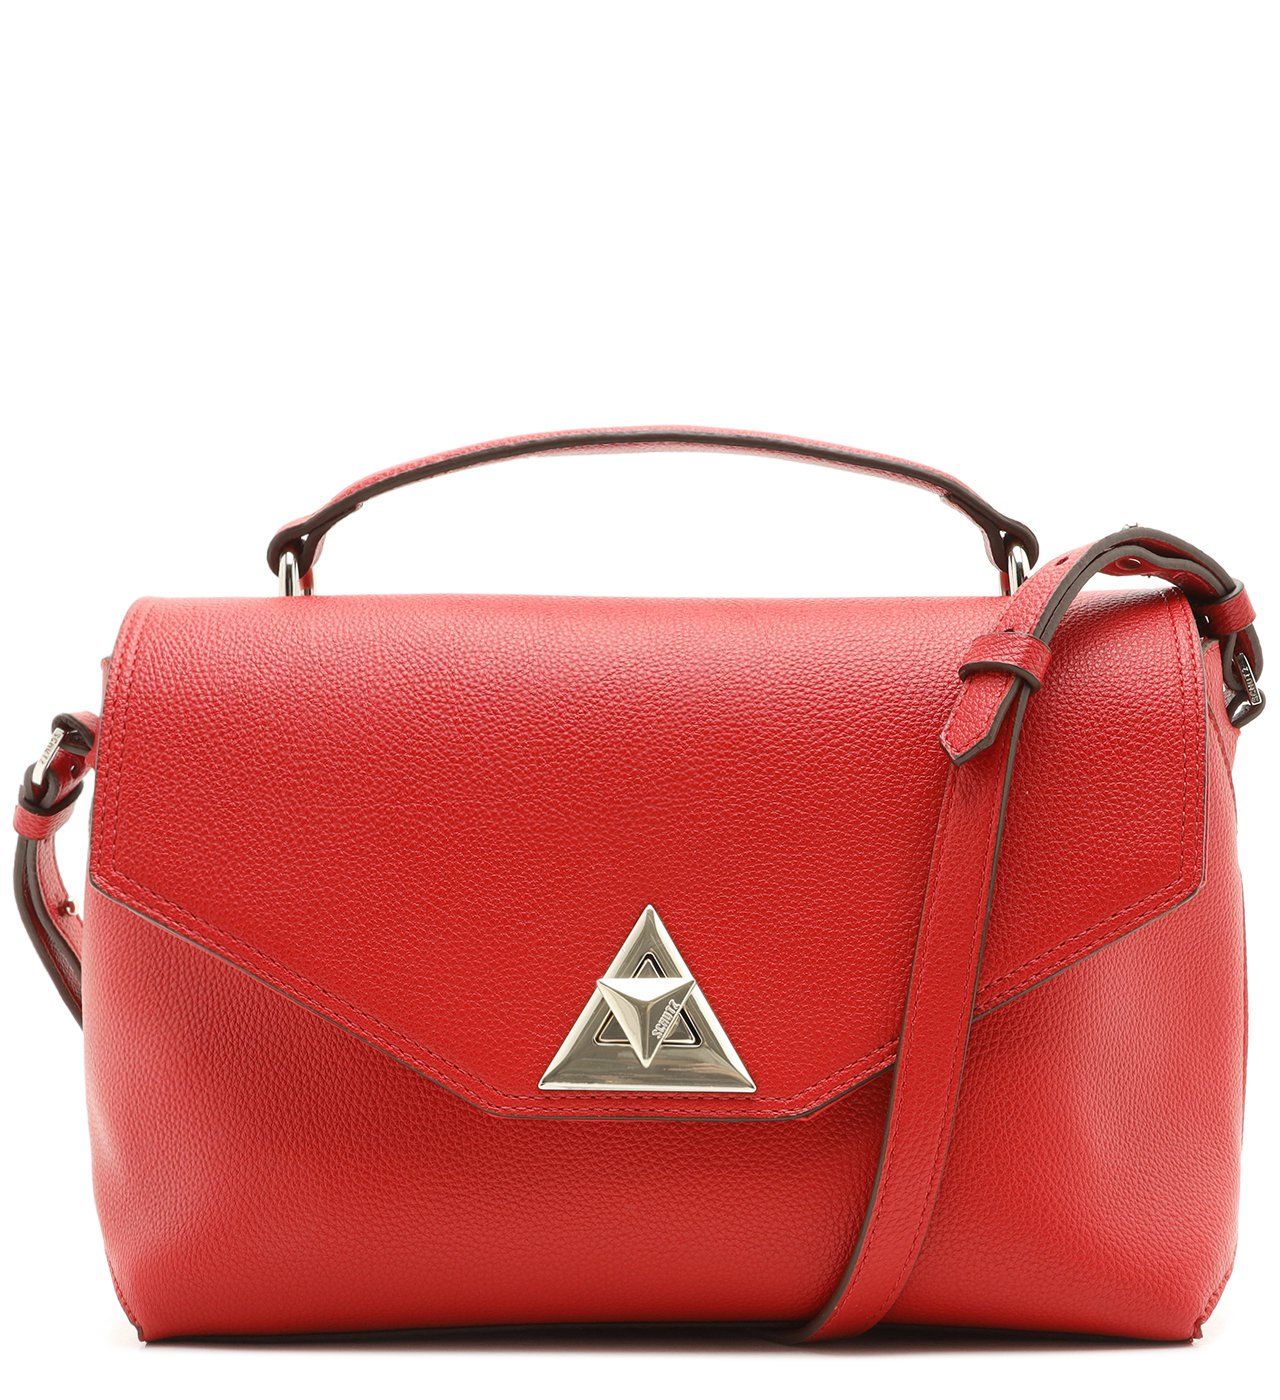 Satchel Bag Leona Red | Schutz